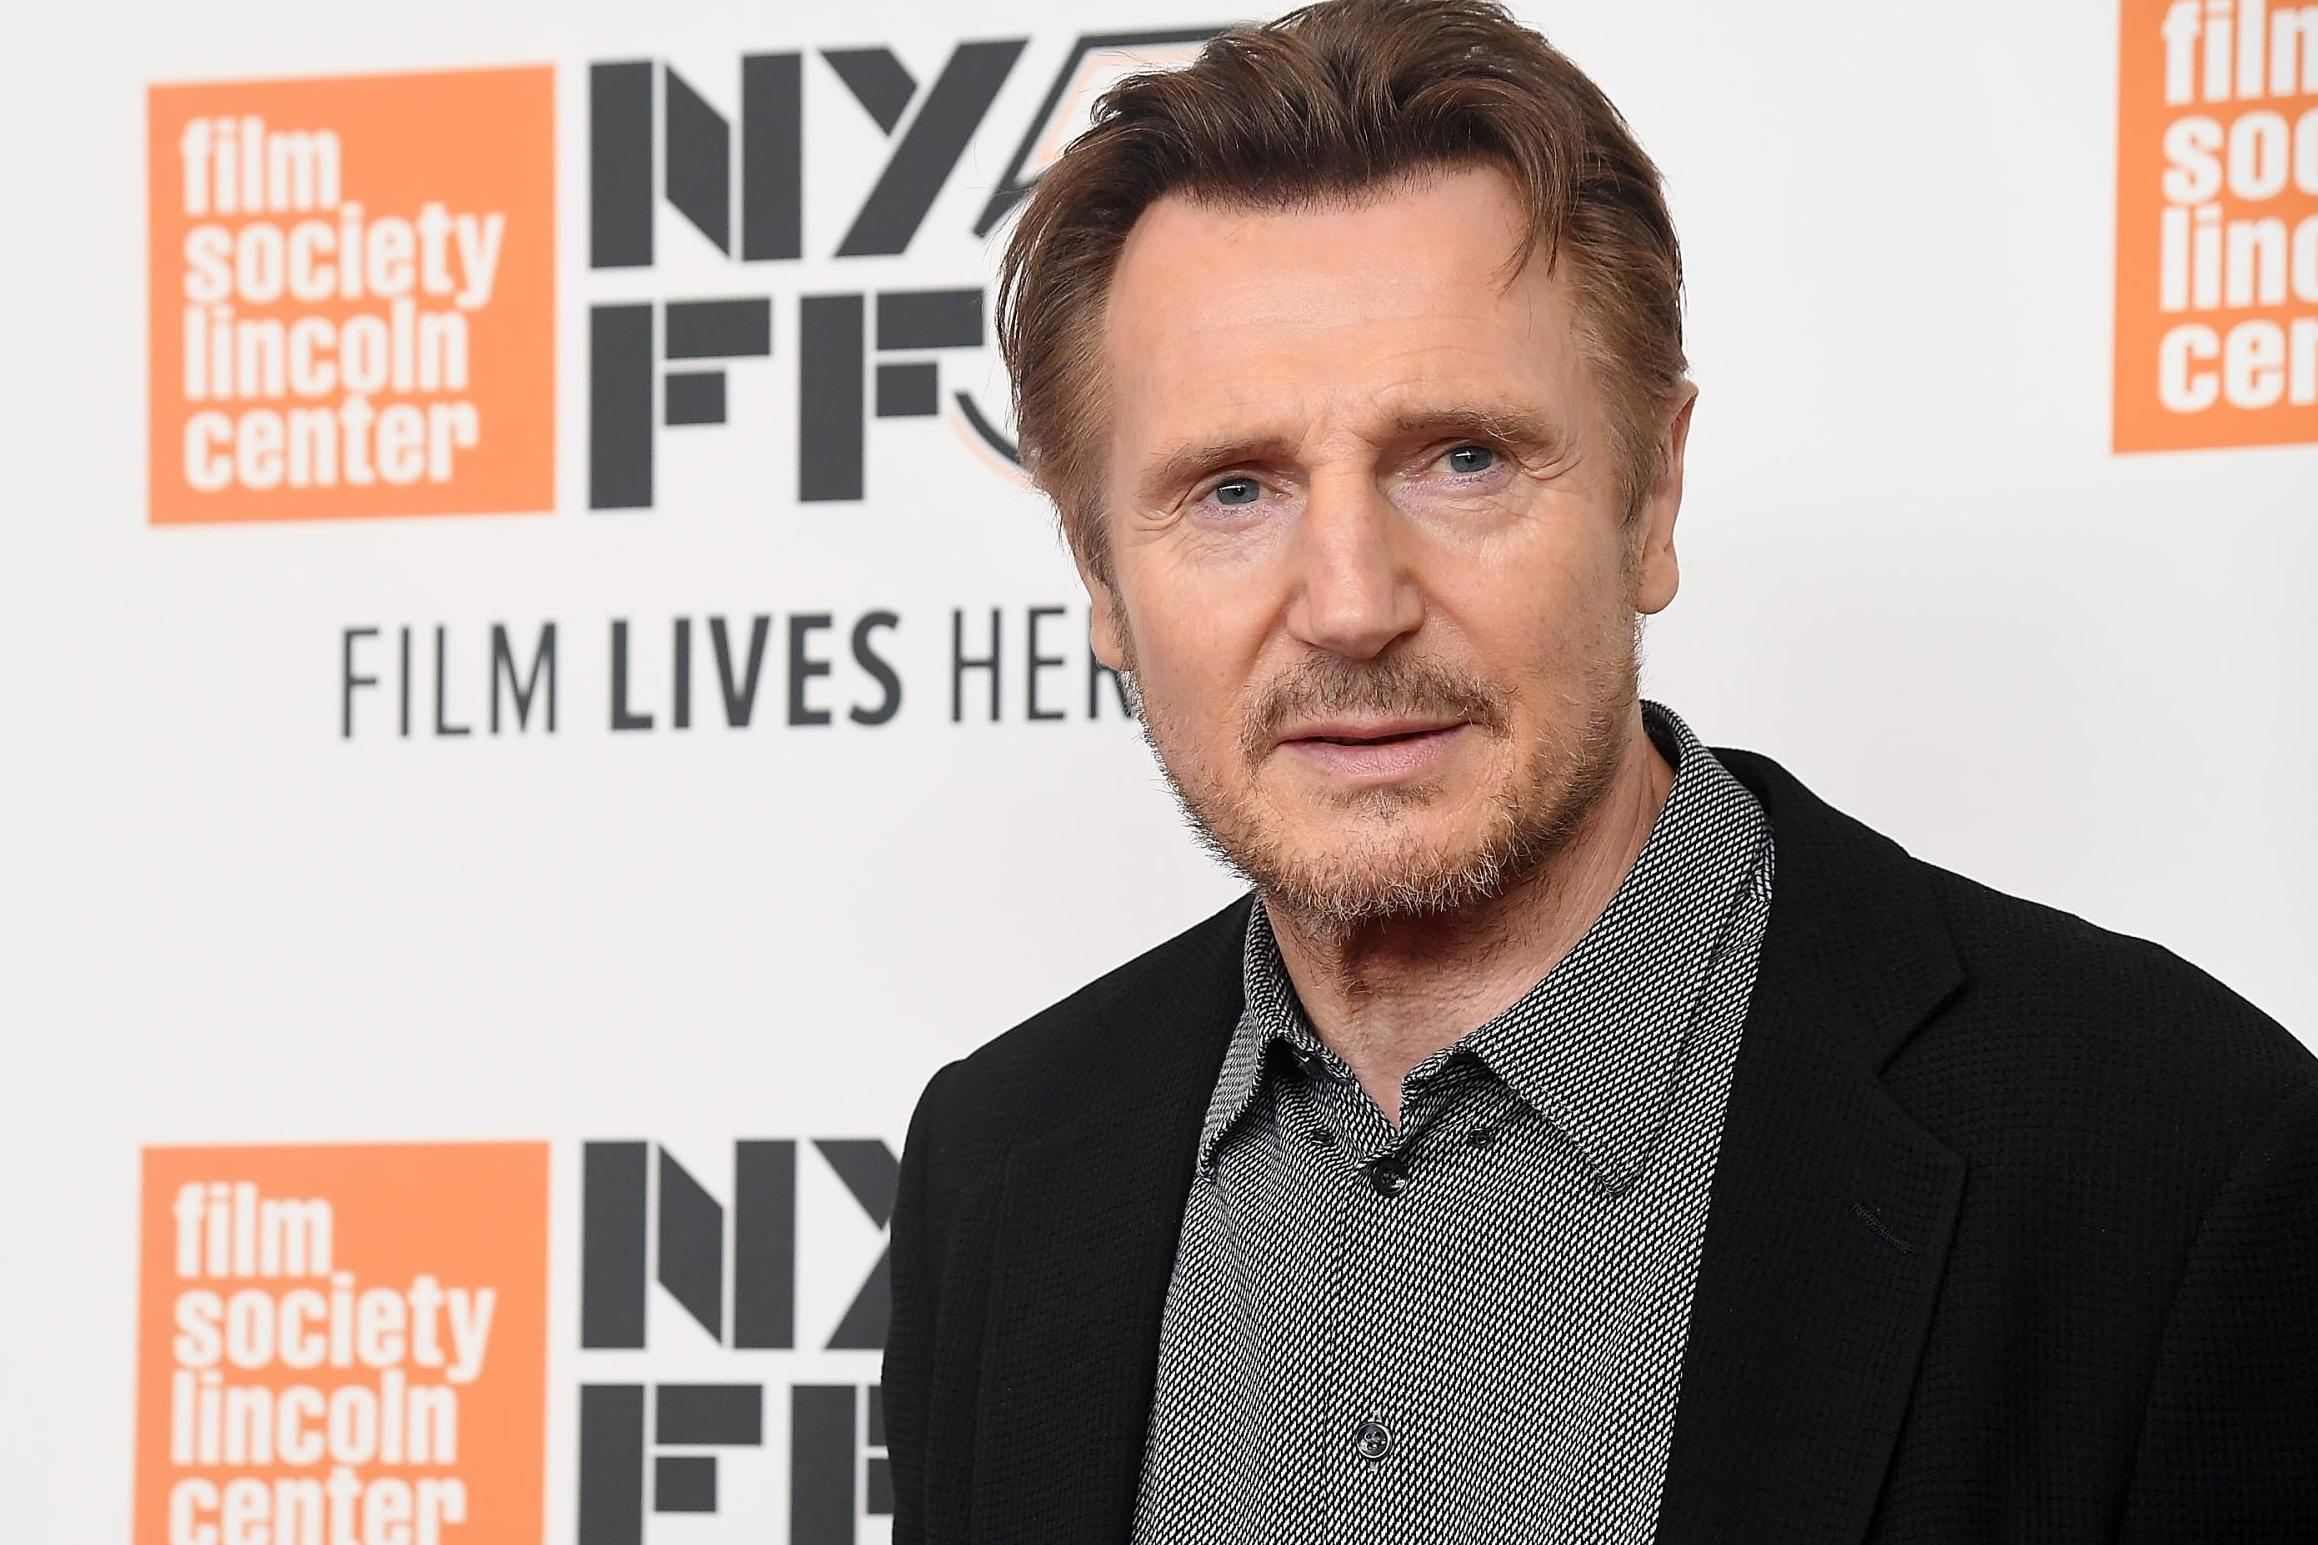 I was the one who broke the controversial Liam Neeson story. Since then, I've learnt something important about 'cancel culture'